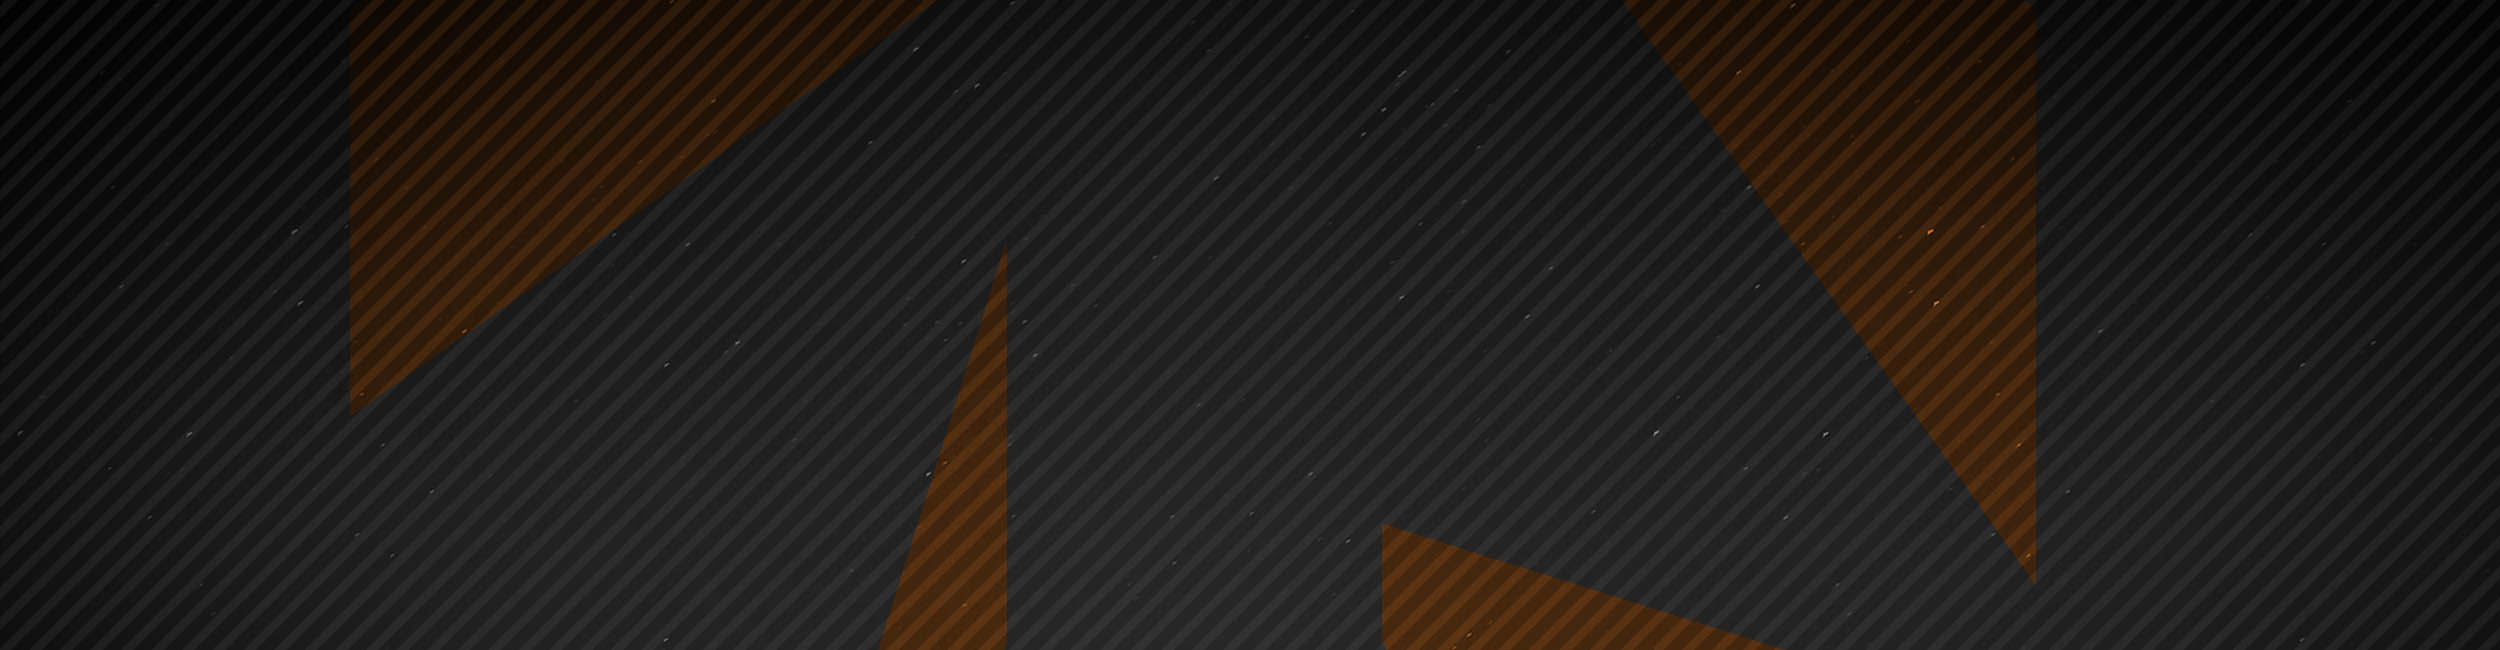 Orange And Black Home Slider